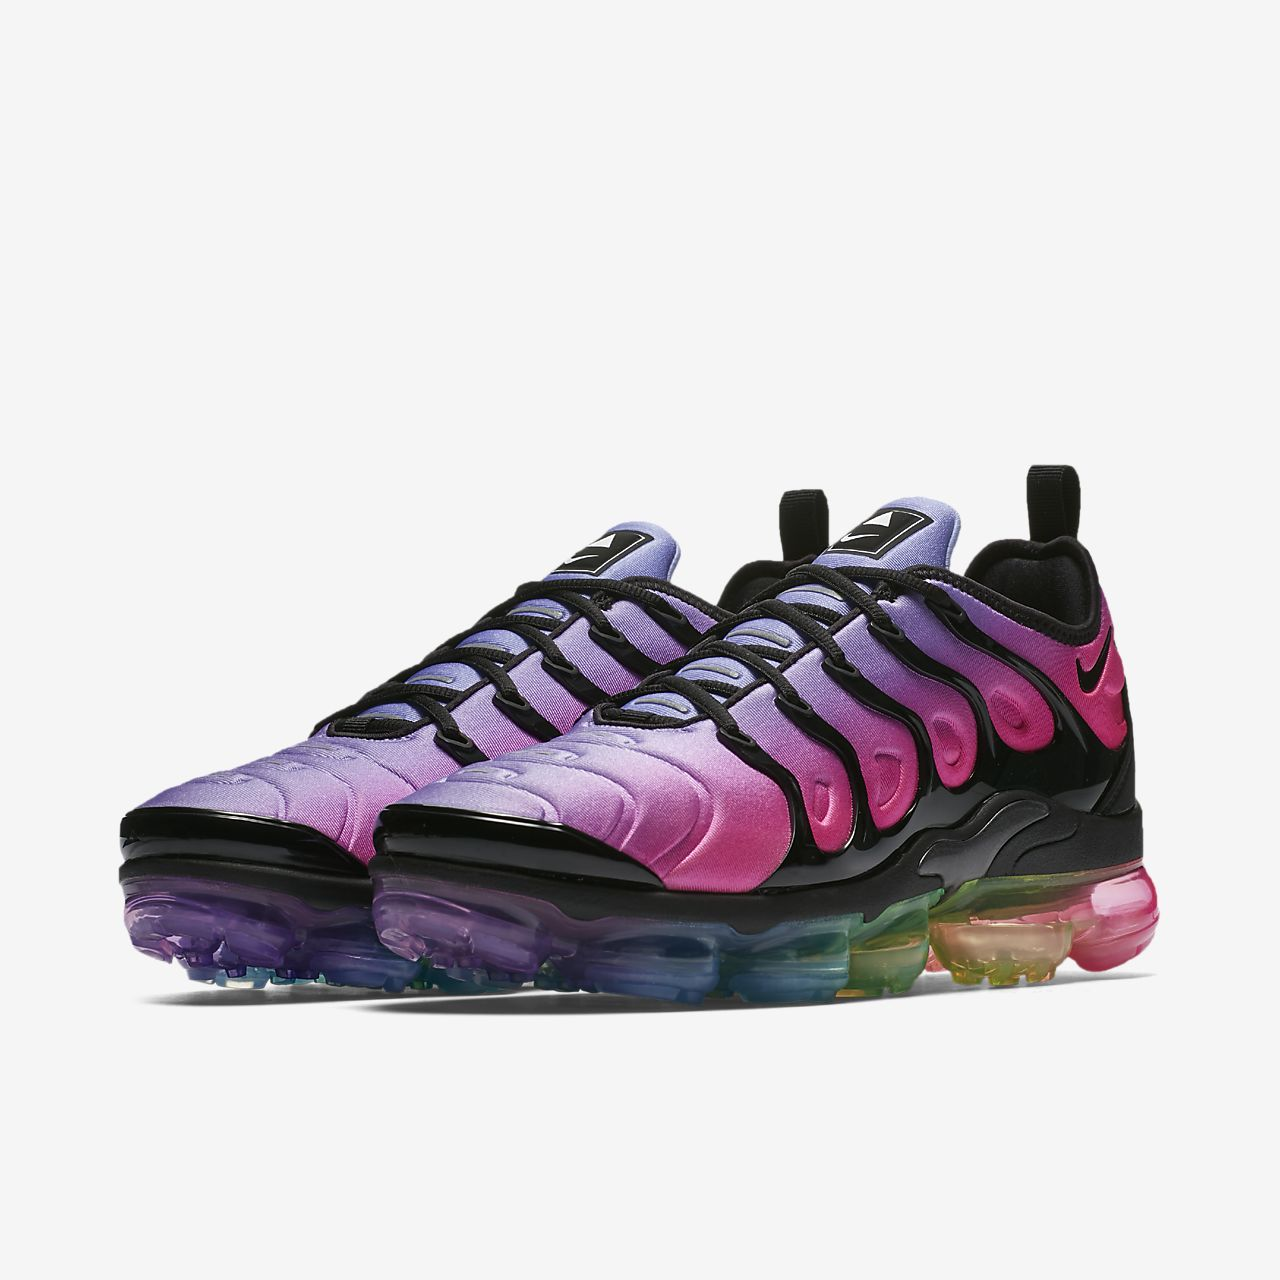 94899f2296ac7 Nike Air VaporMax Plus BETRUE Men s Shoe. Nike.com CA